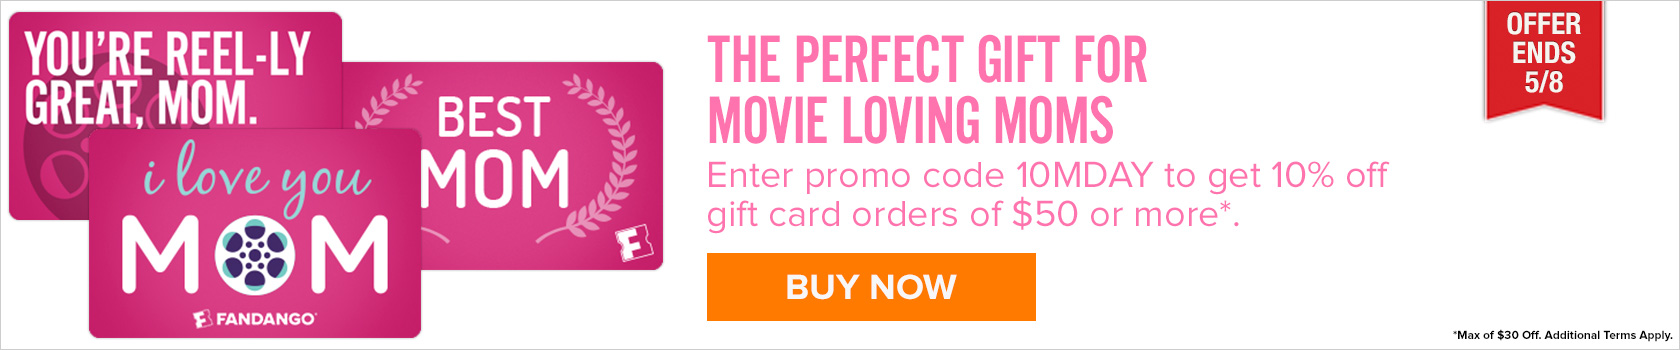 mother's day gift card offer